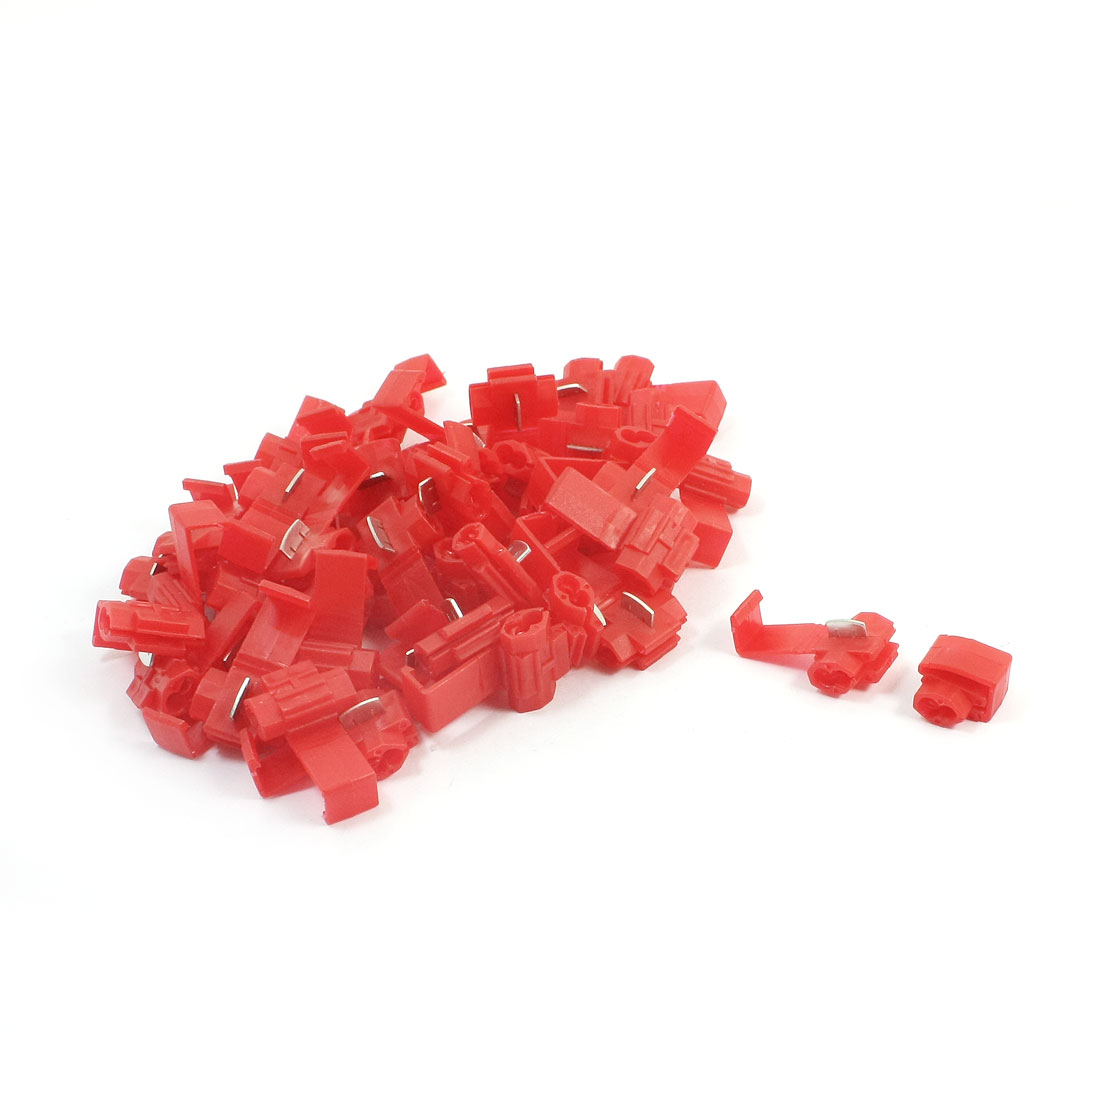 50Pcs 10A 22-18AWG Dual Slots Red Plastic Insulated Quick Wire Connector Terminal Cable Crimp Adapter 50 Pcs